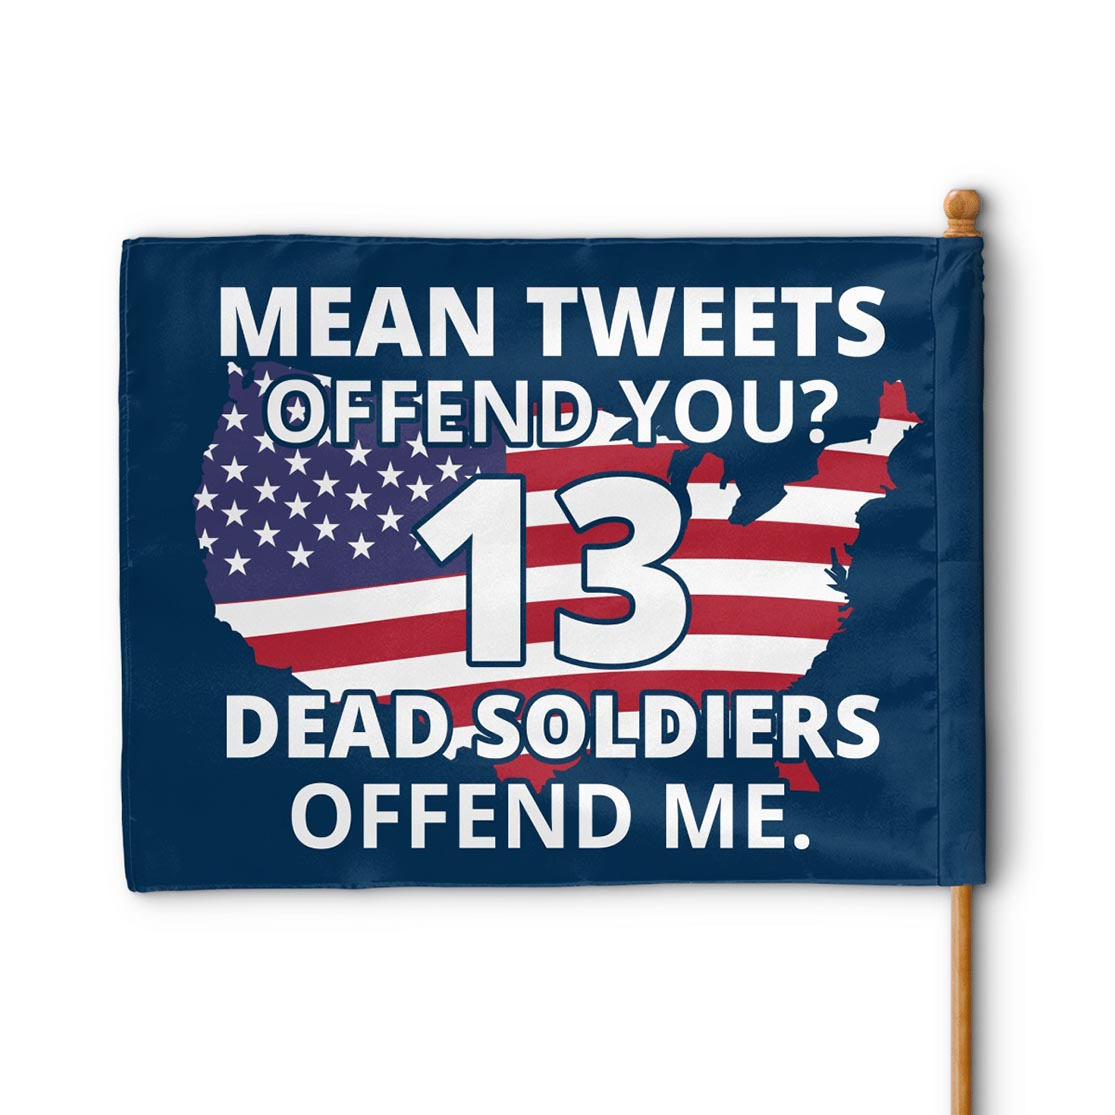 Mean tweets offend you 13 dead soldiers offend me American flag